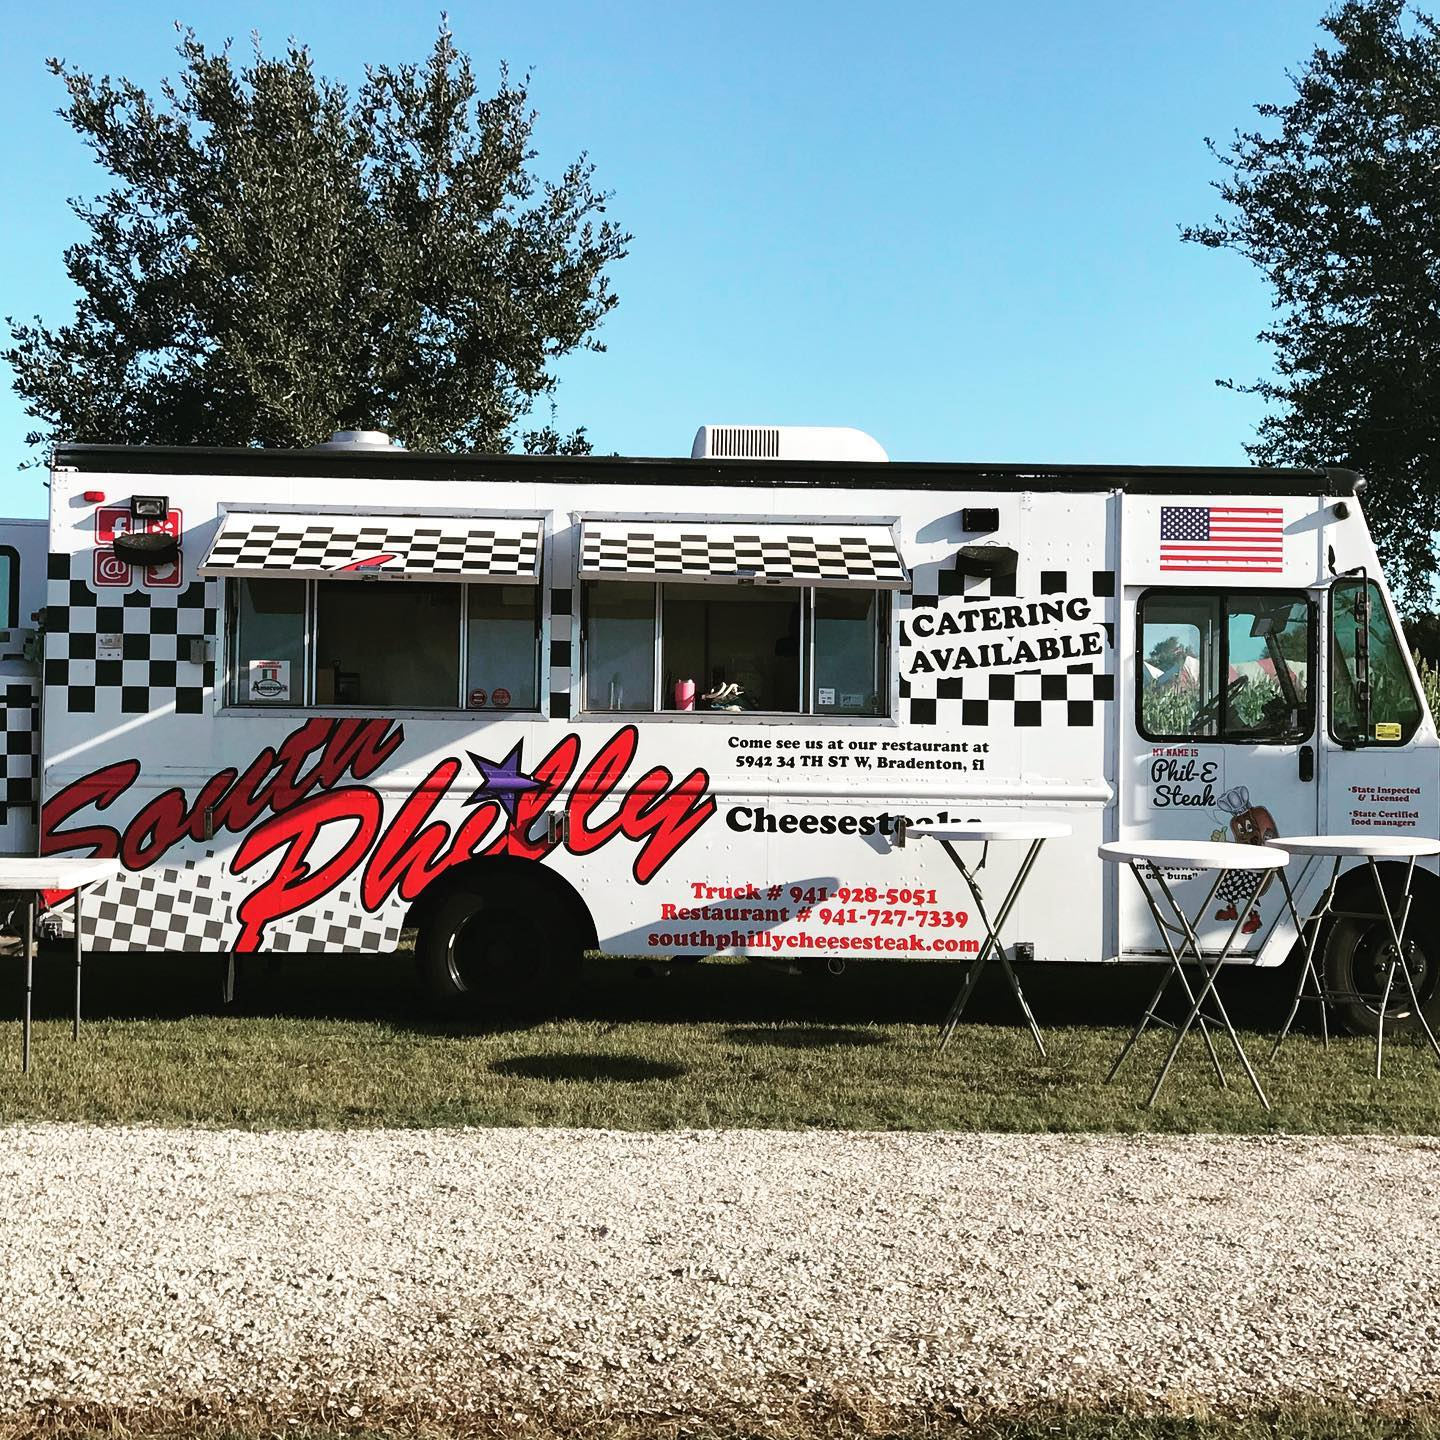 South Philly Cheesesteaks Food Truck